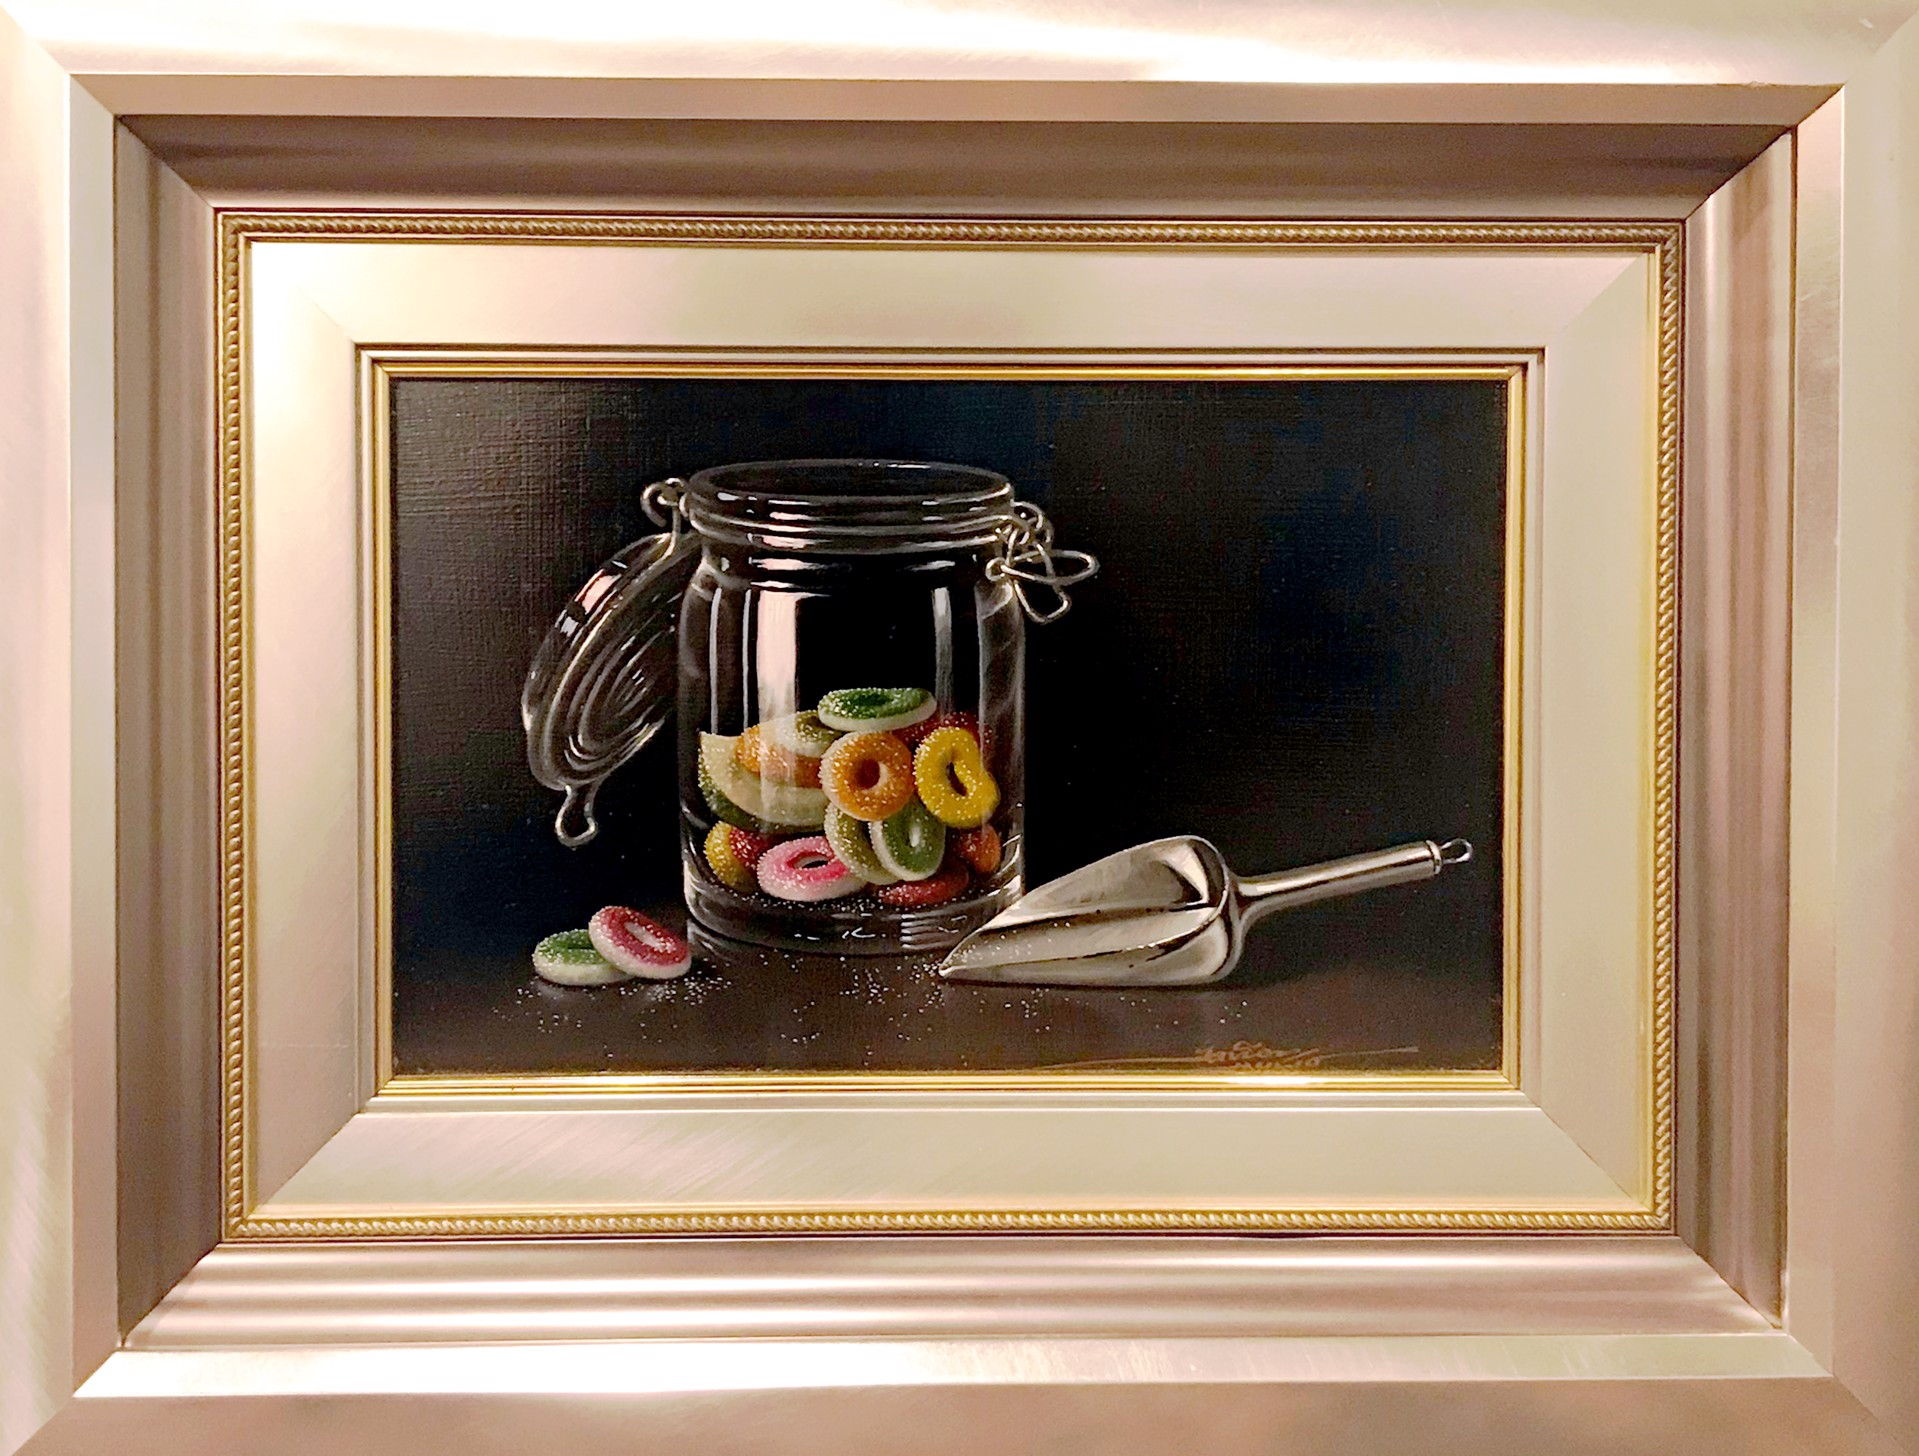 Candy Jar by Javier Mulio